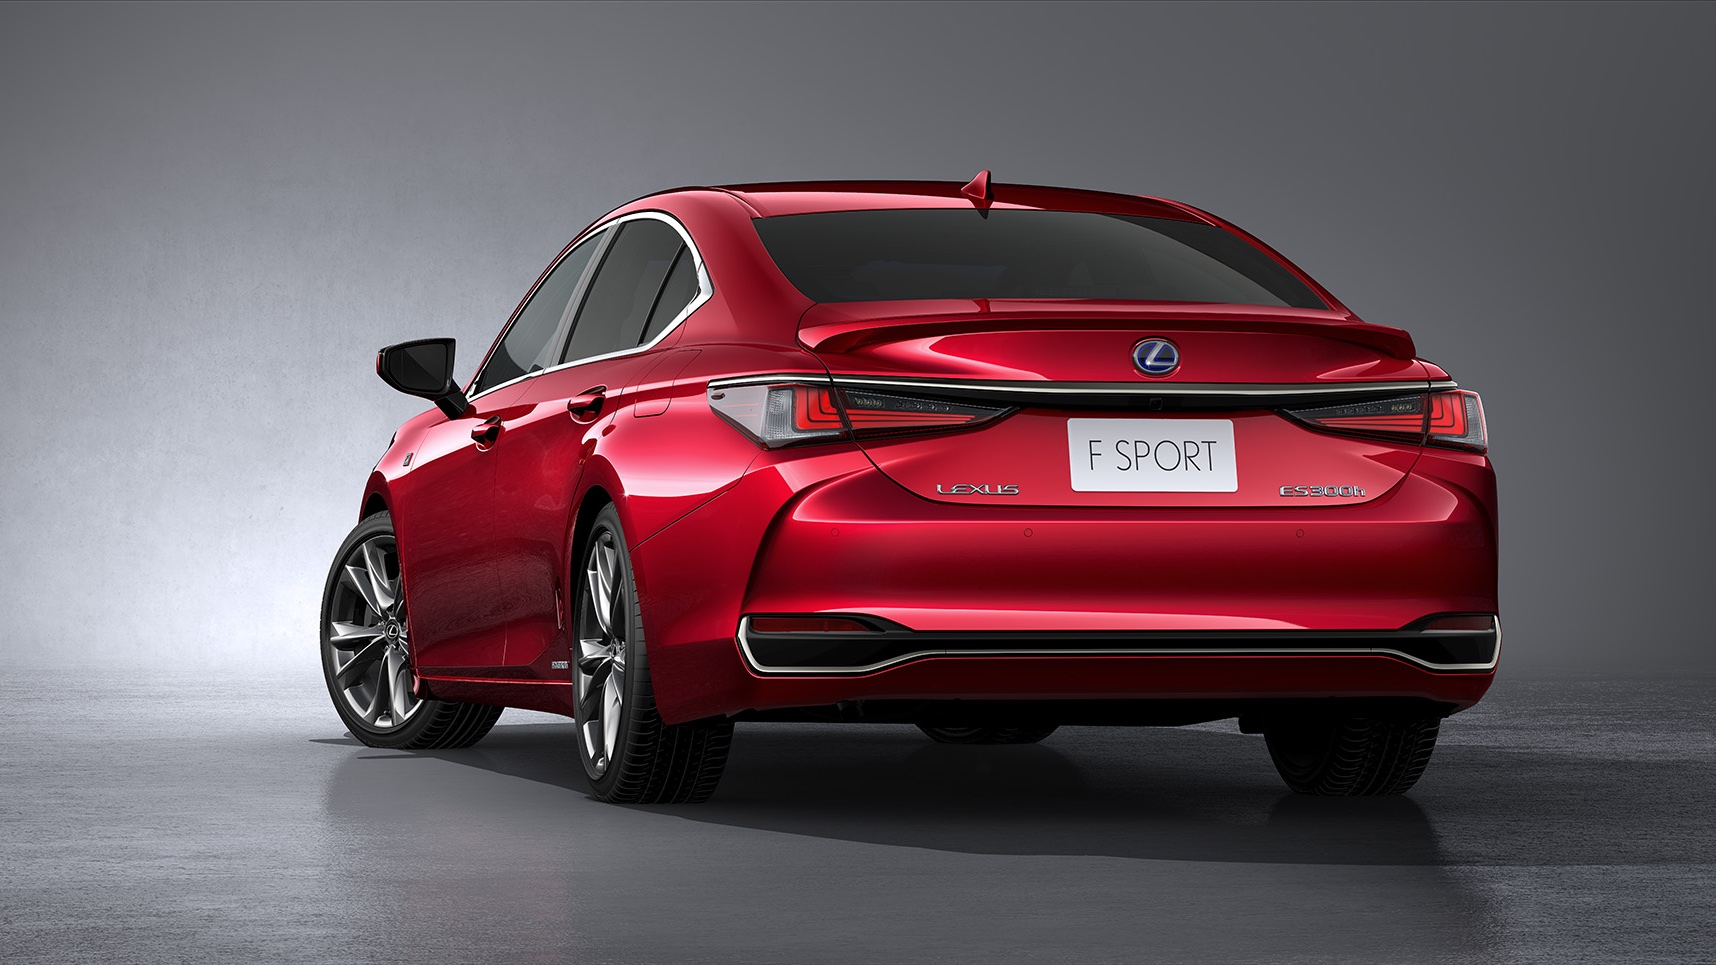 2020 Lexus ES F Sport red rear end